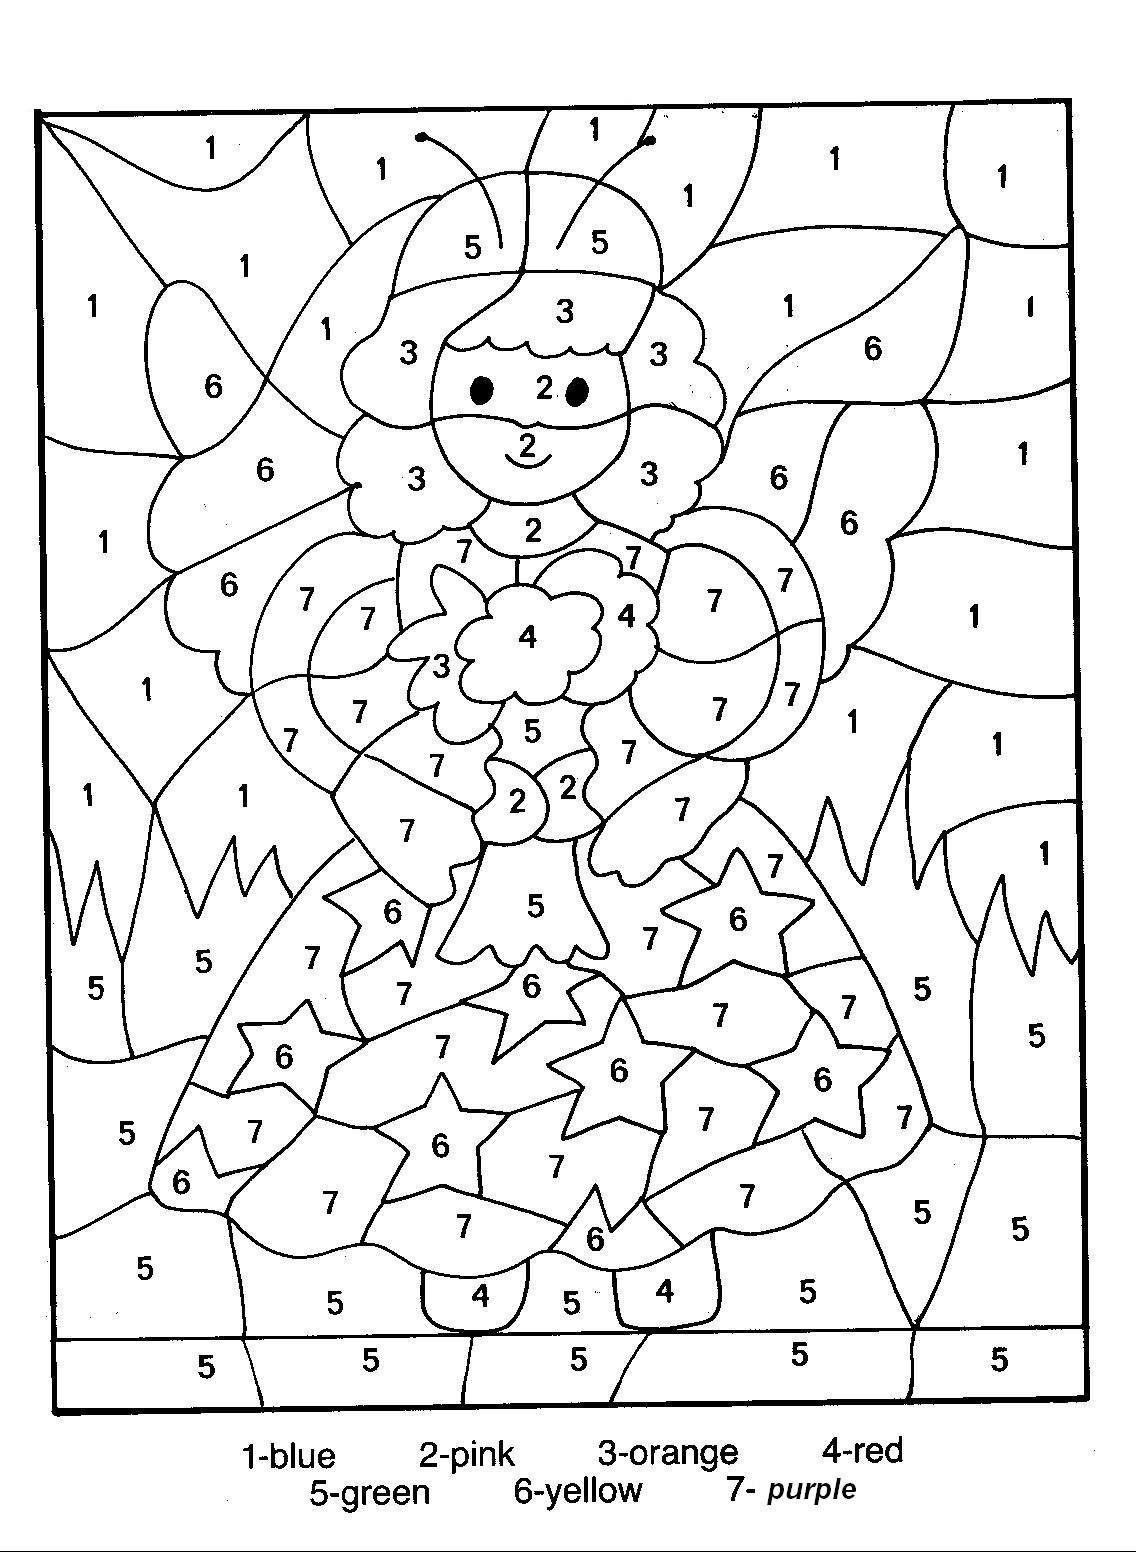 integer coloring activity pages - photo#7